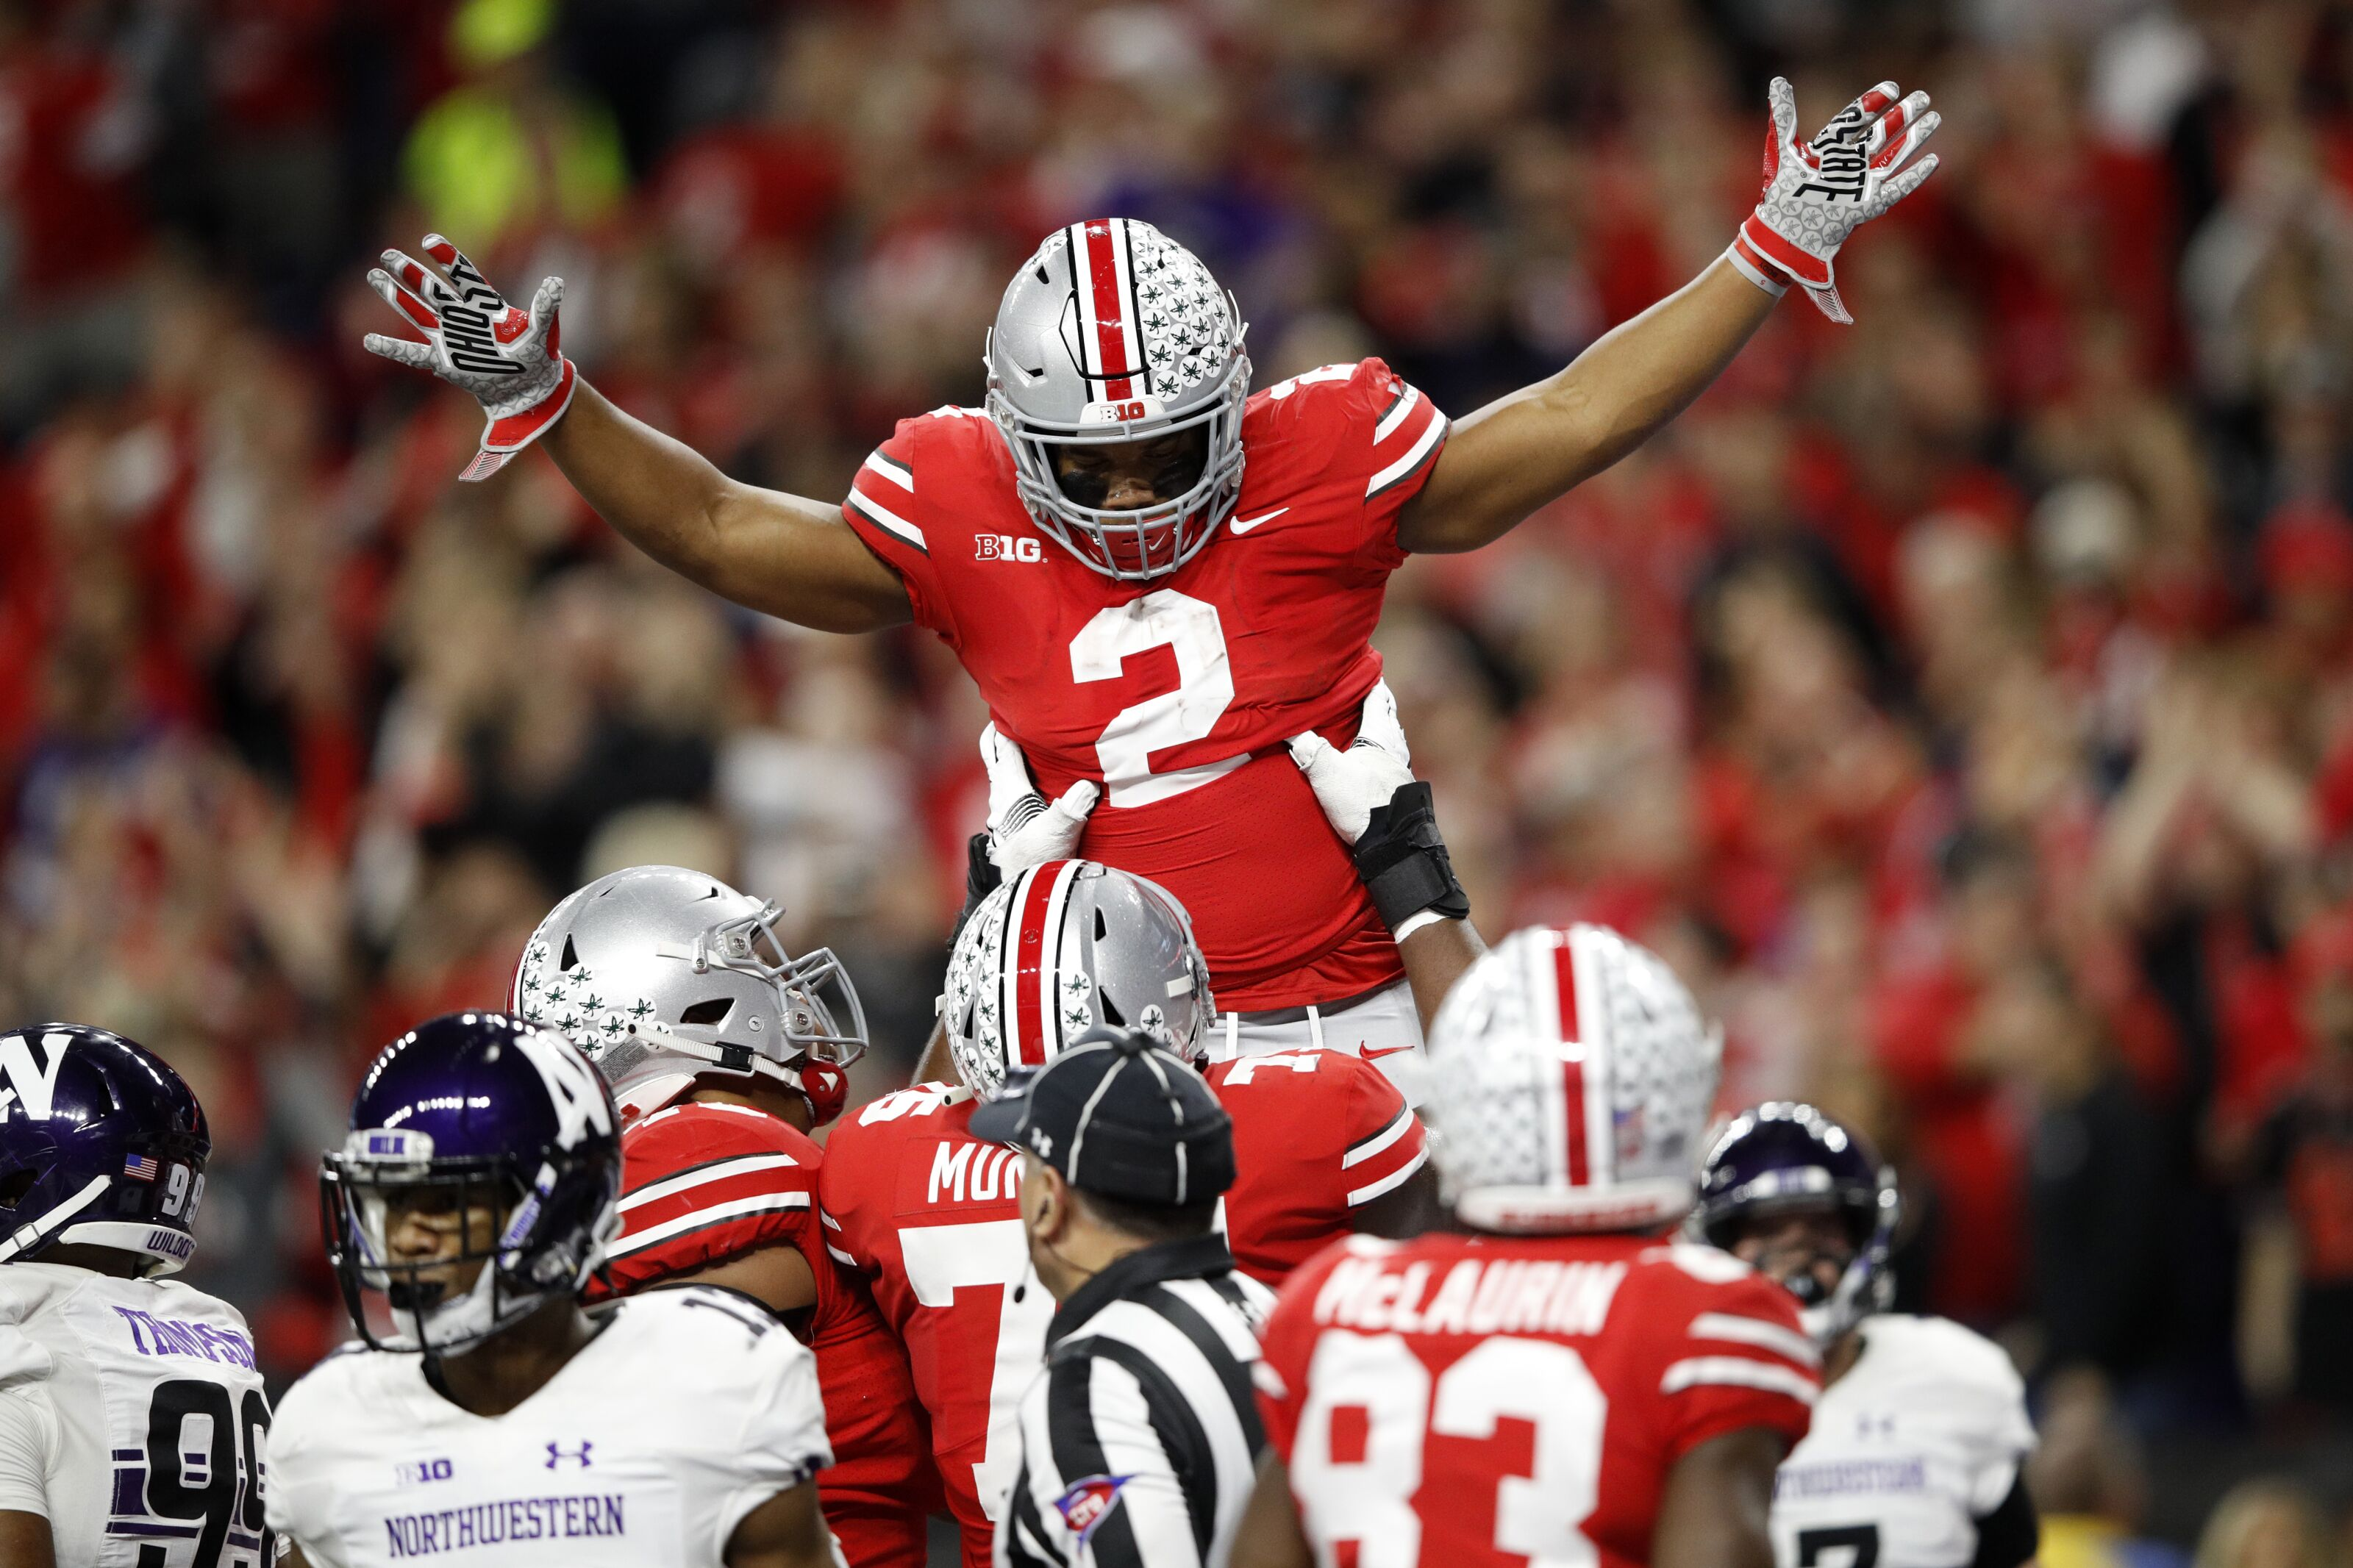 Ohio State Football: Buckeyes still strong, wrongfully underrated